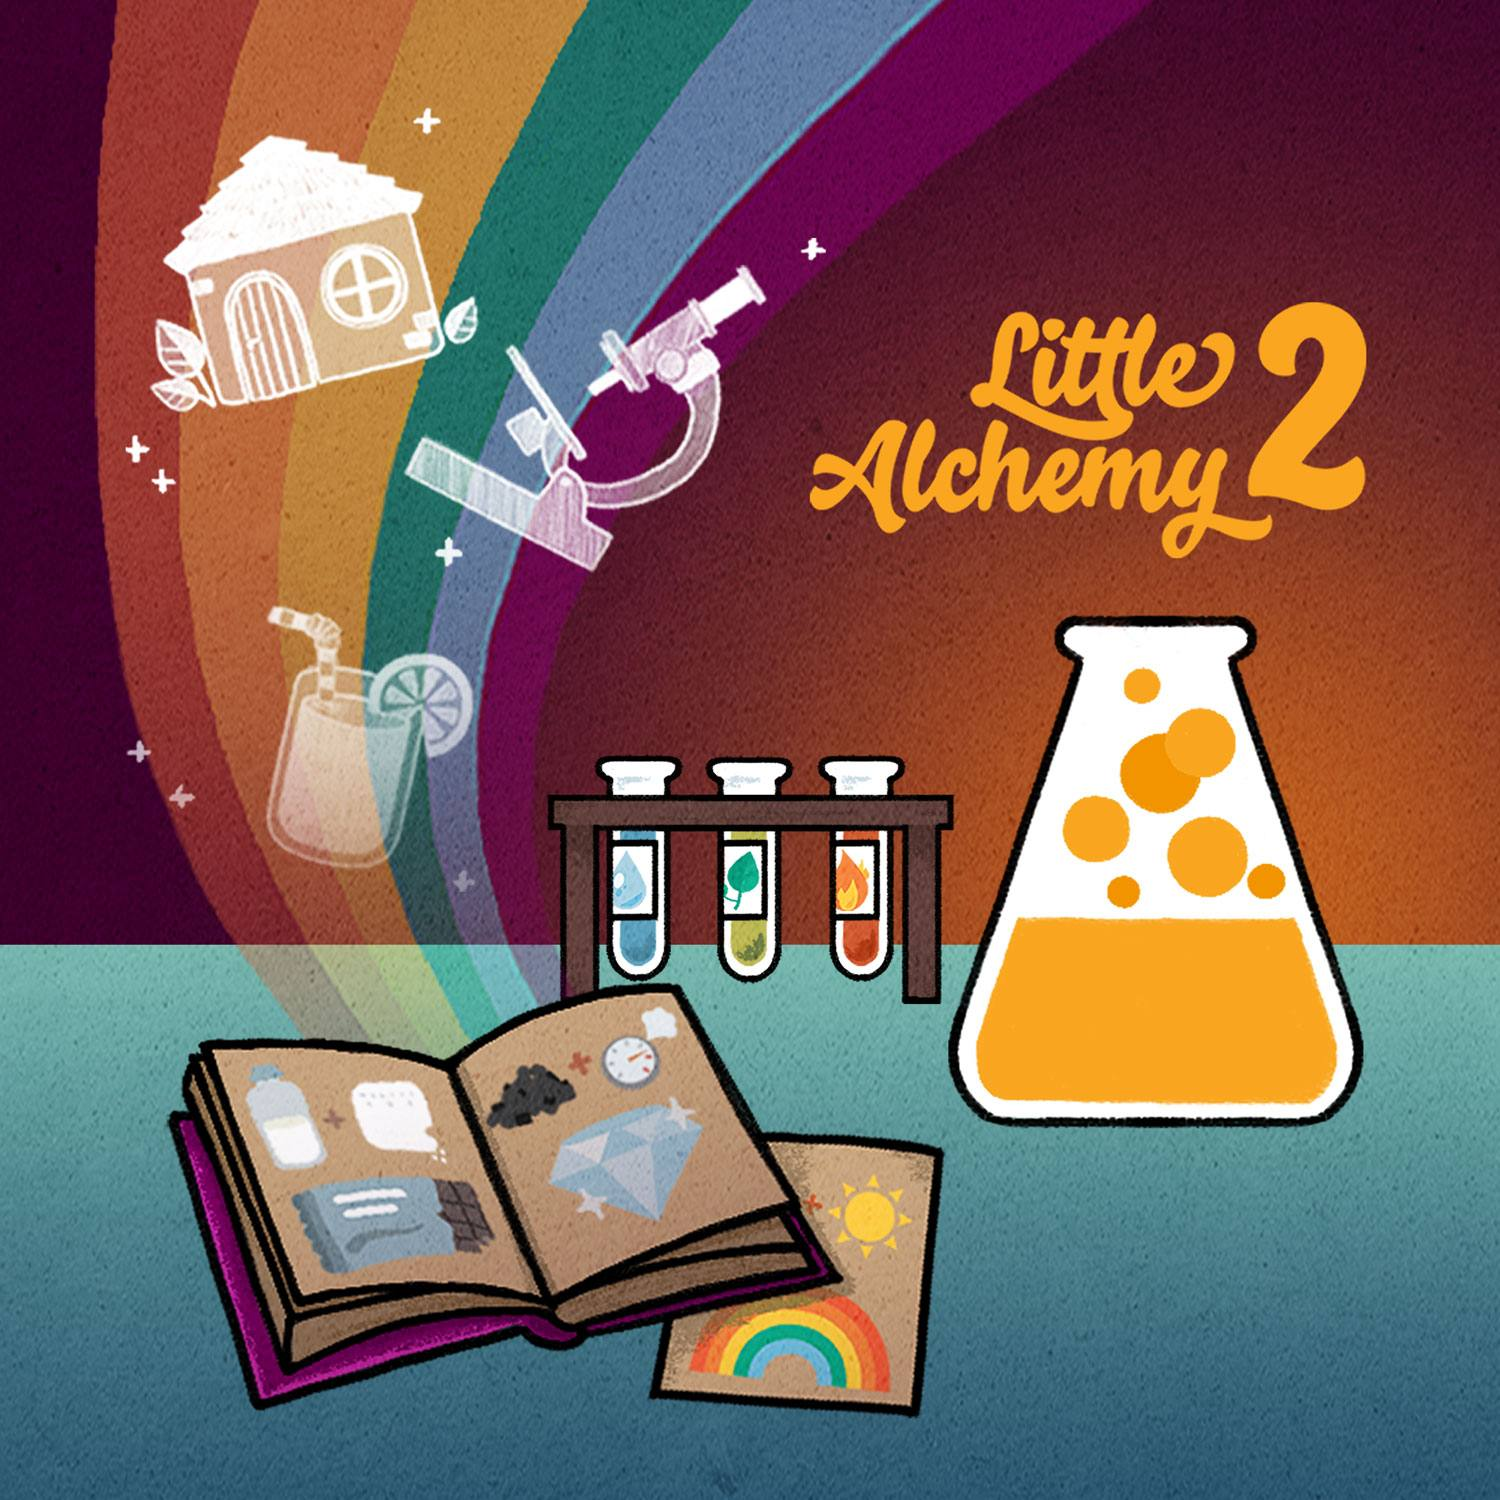 little-alchemy-2